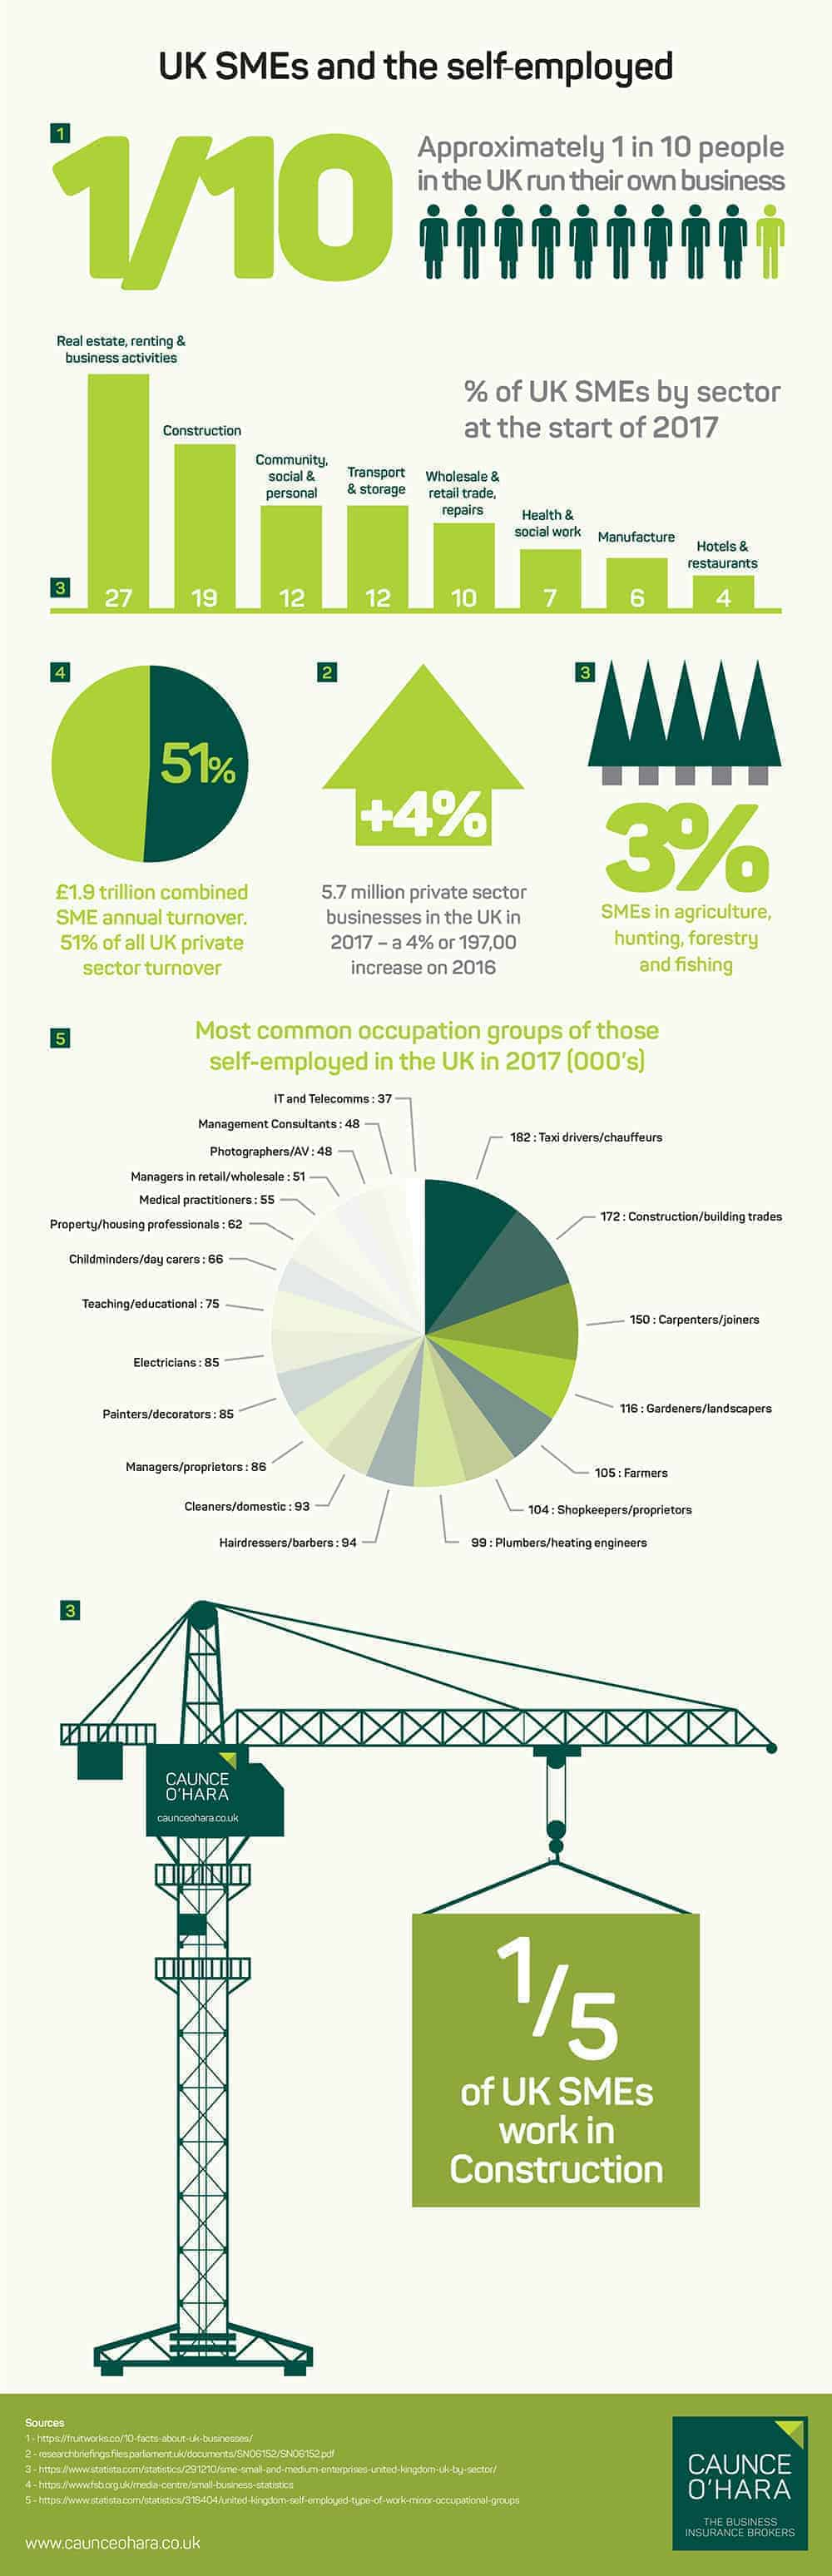 UK SMEs and the self-employed stats infographic